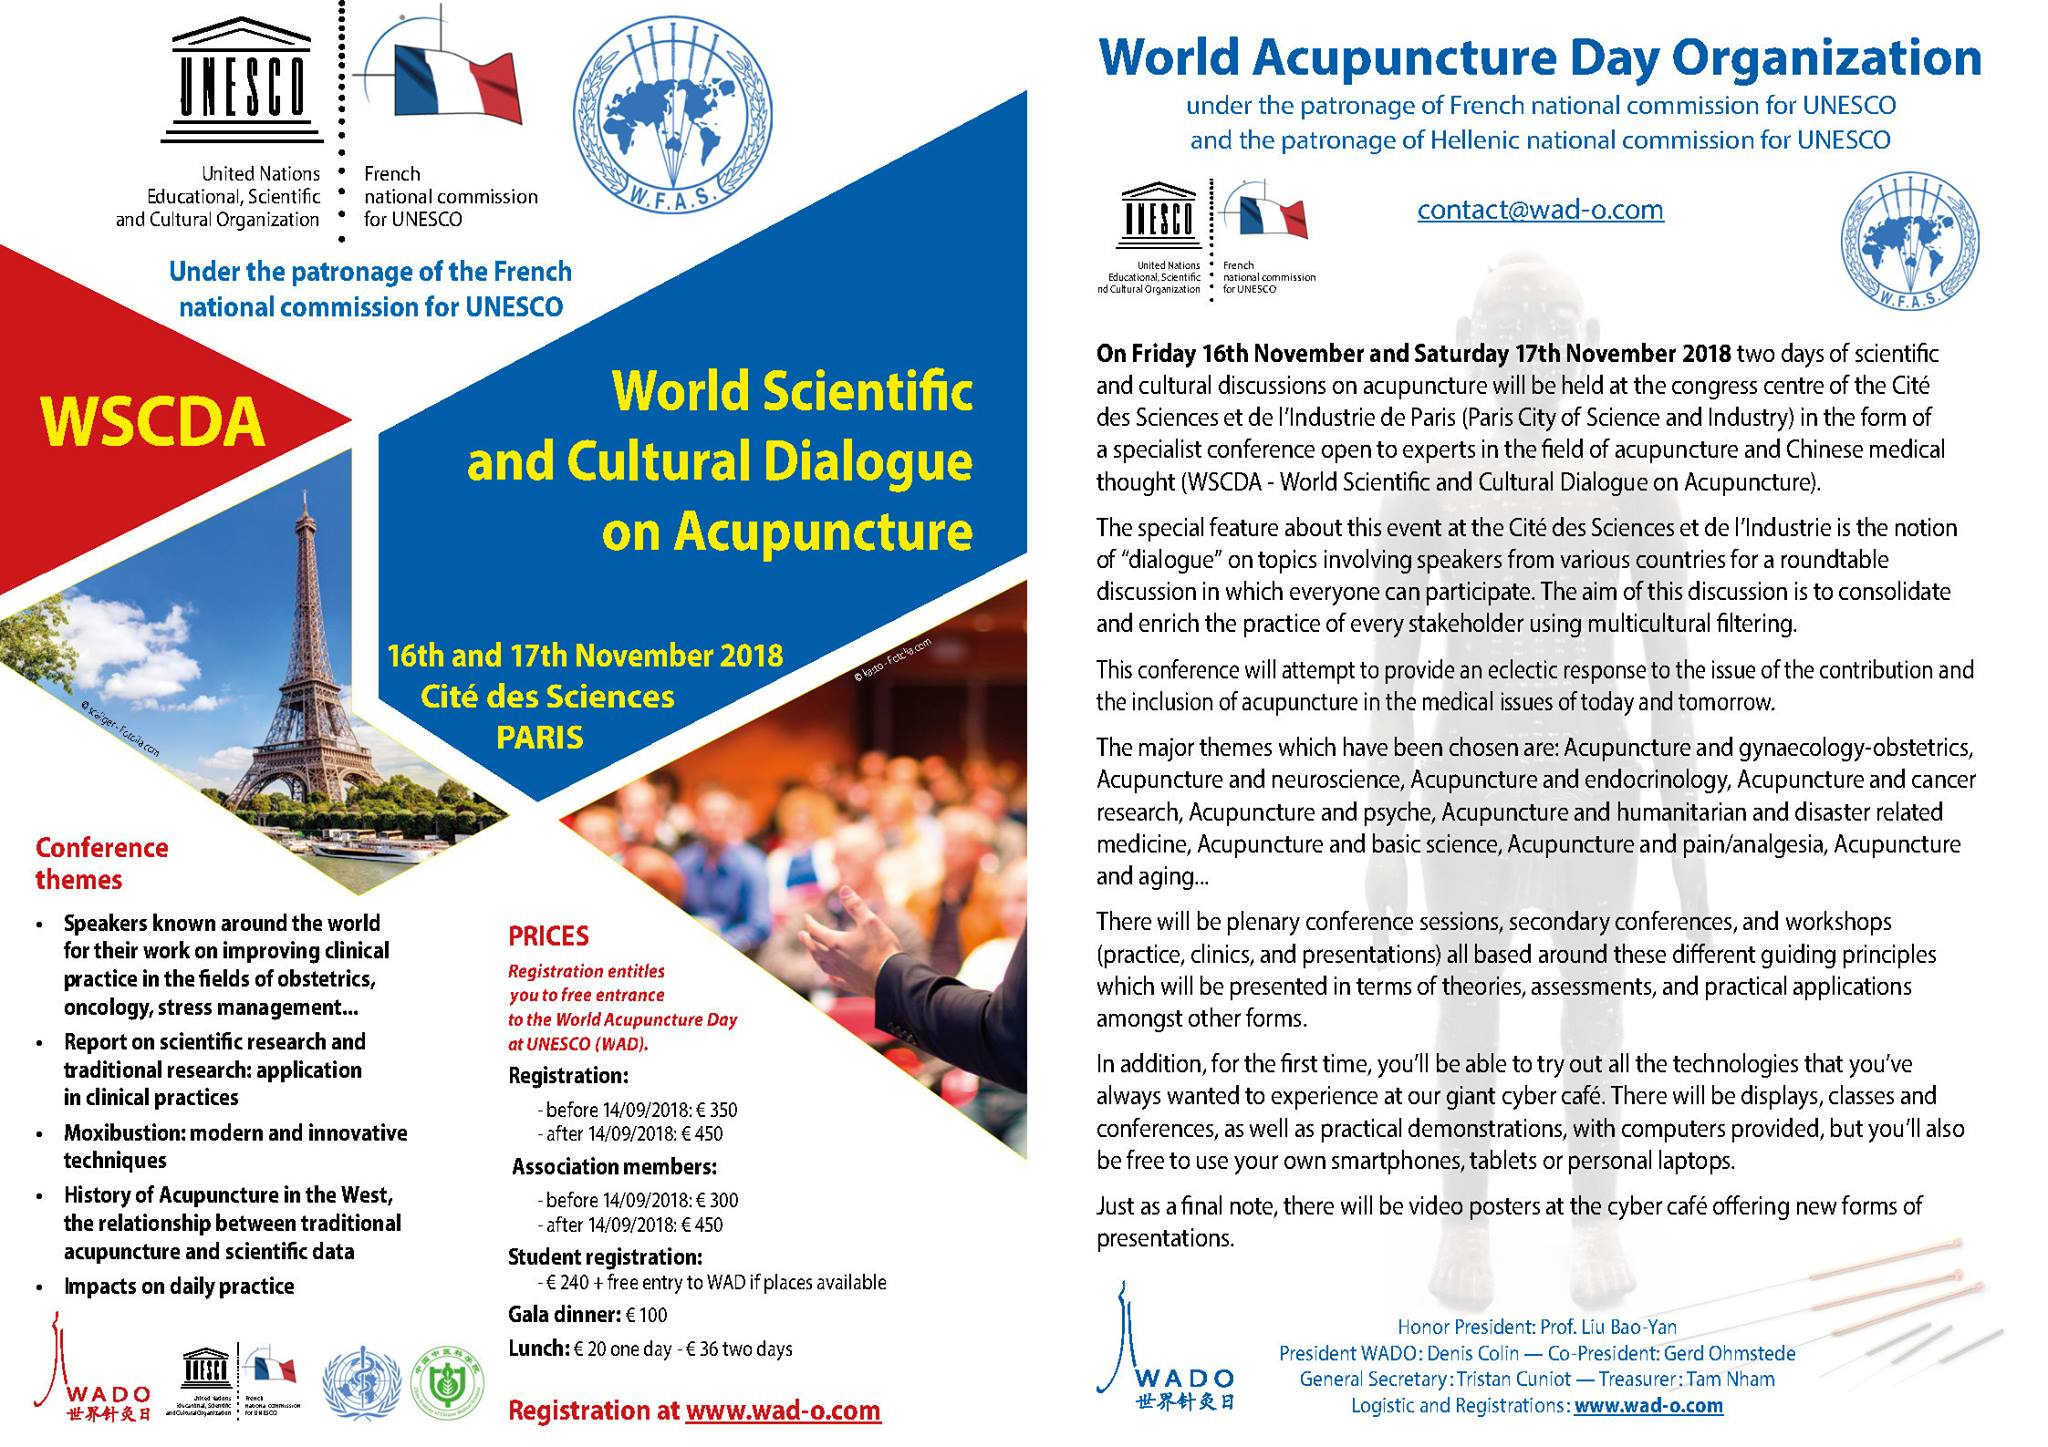 Save the Date: World Acupuncture Day (WAD) November 15, 2018